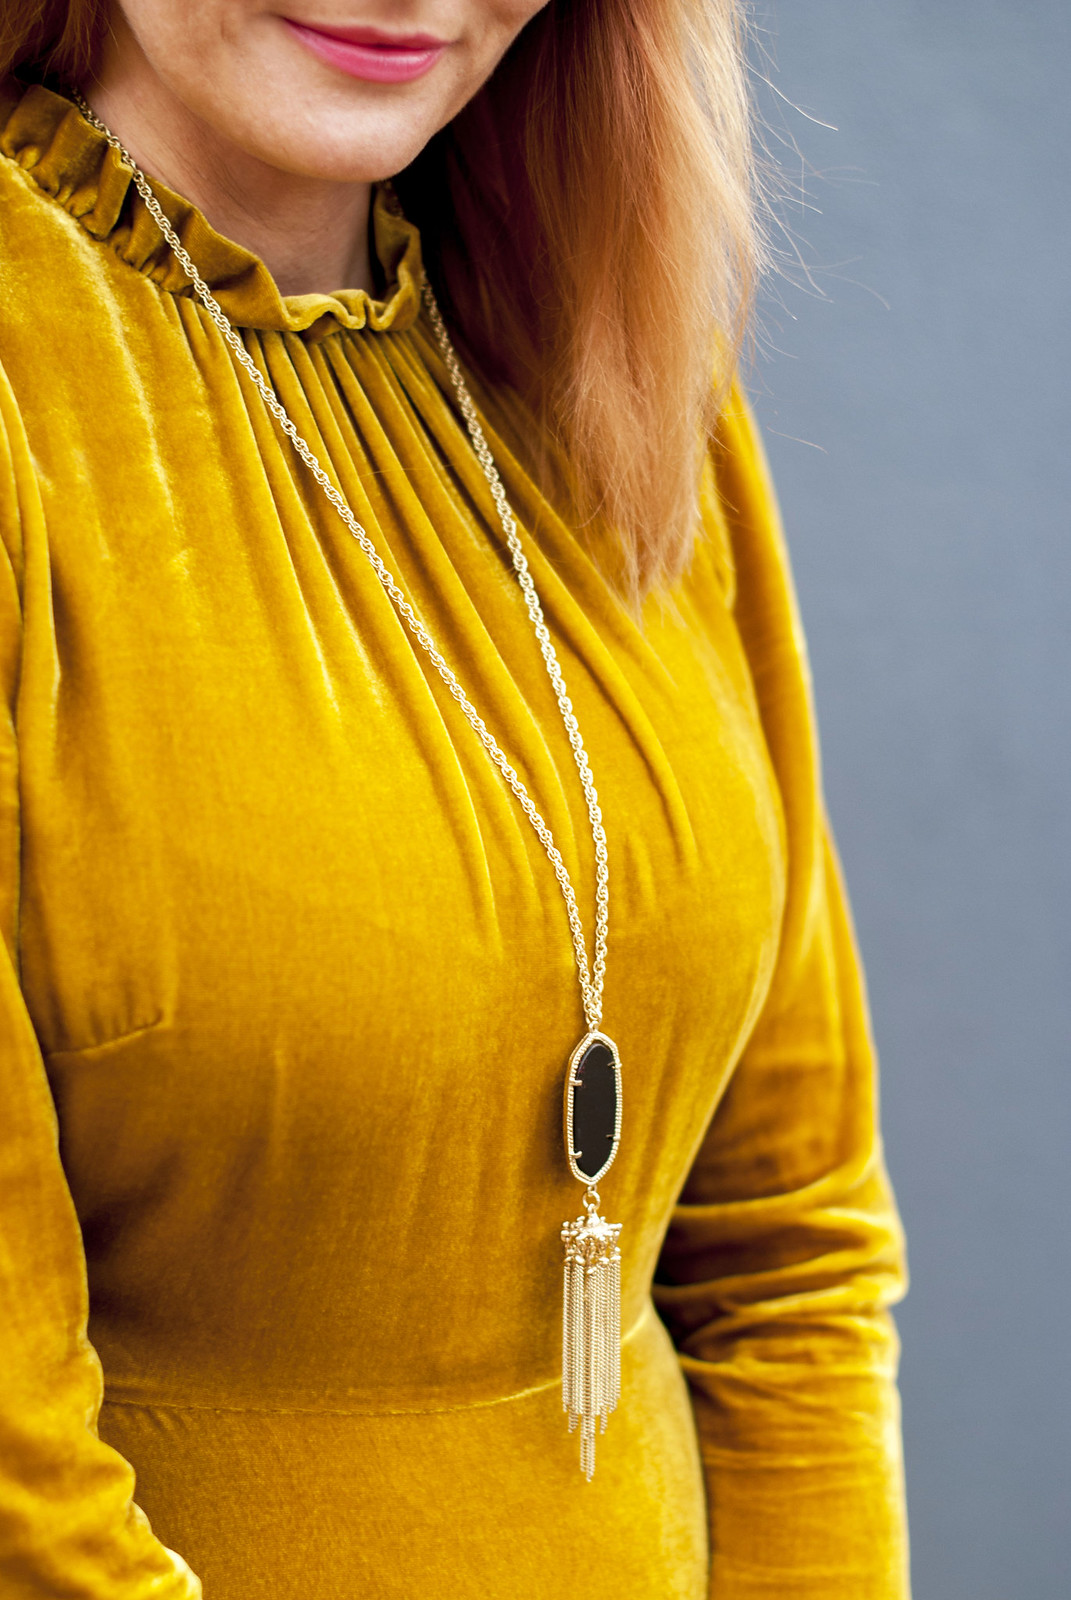 Desk to dinner outfit: One dress styled two ways | A Hobbs yellow ochre velvet midi dress with ruffles styled as office workwear and a date night outfit